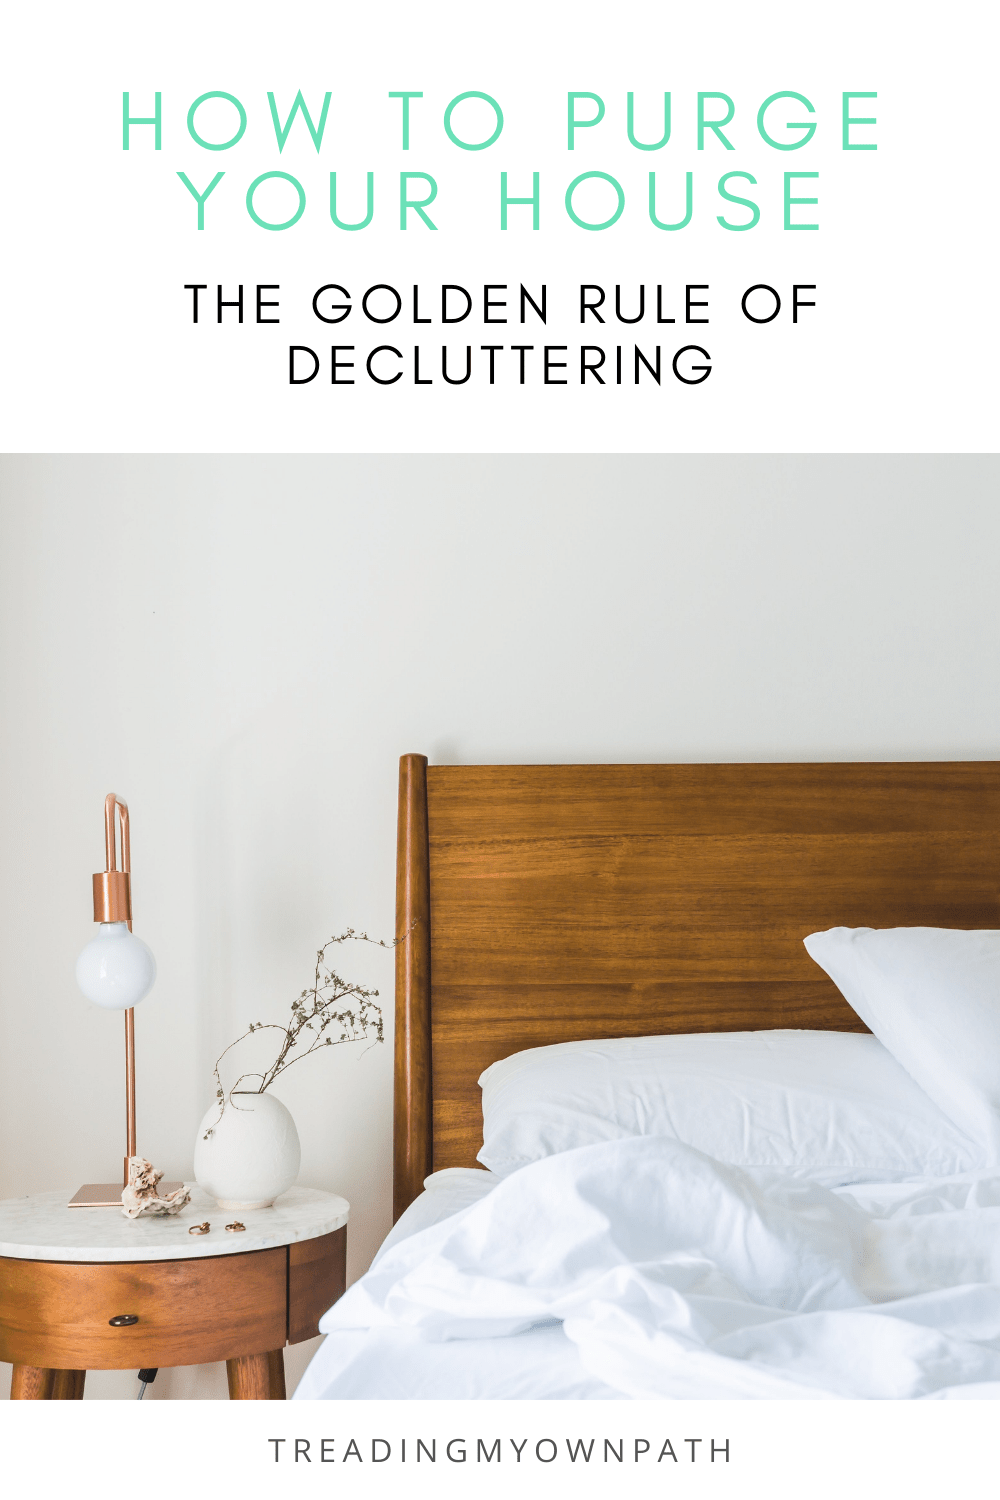 The One Golden Rule of Decluttering